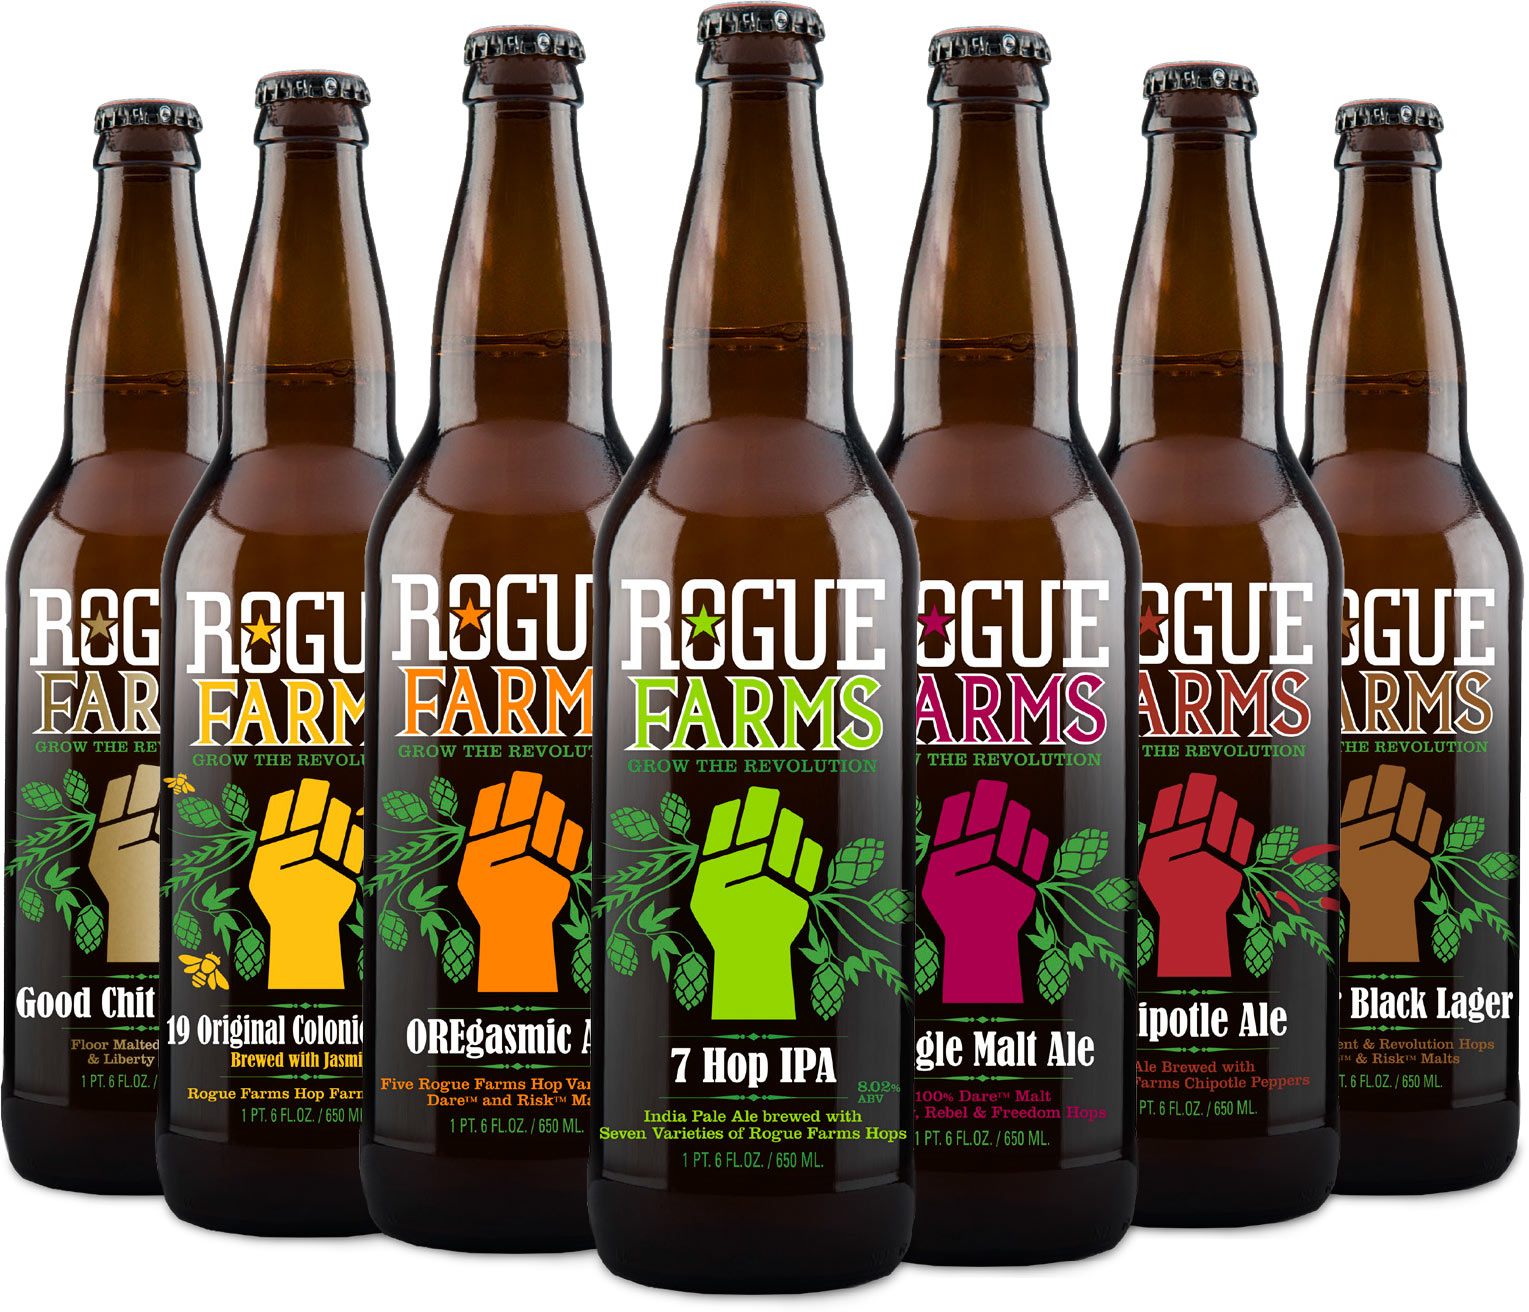 Rogue Farms bottle labels